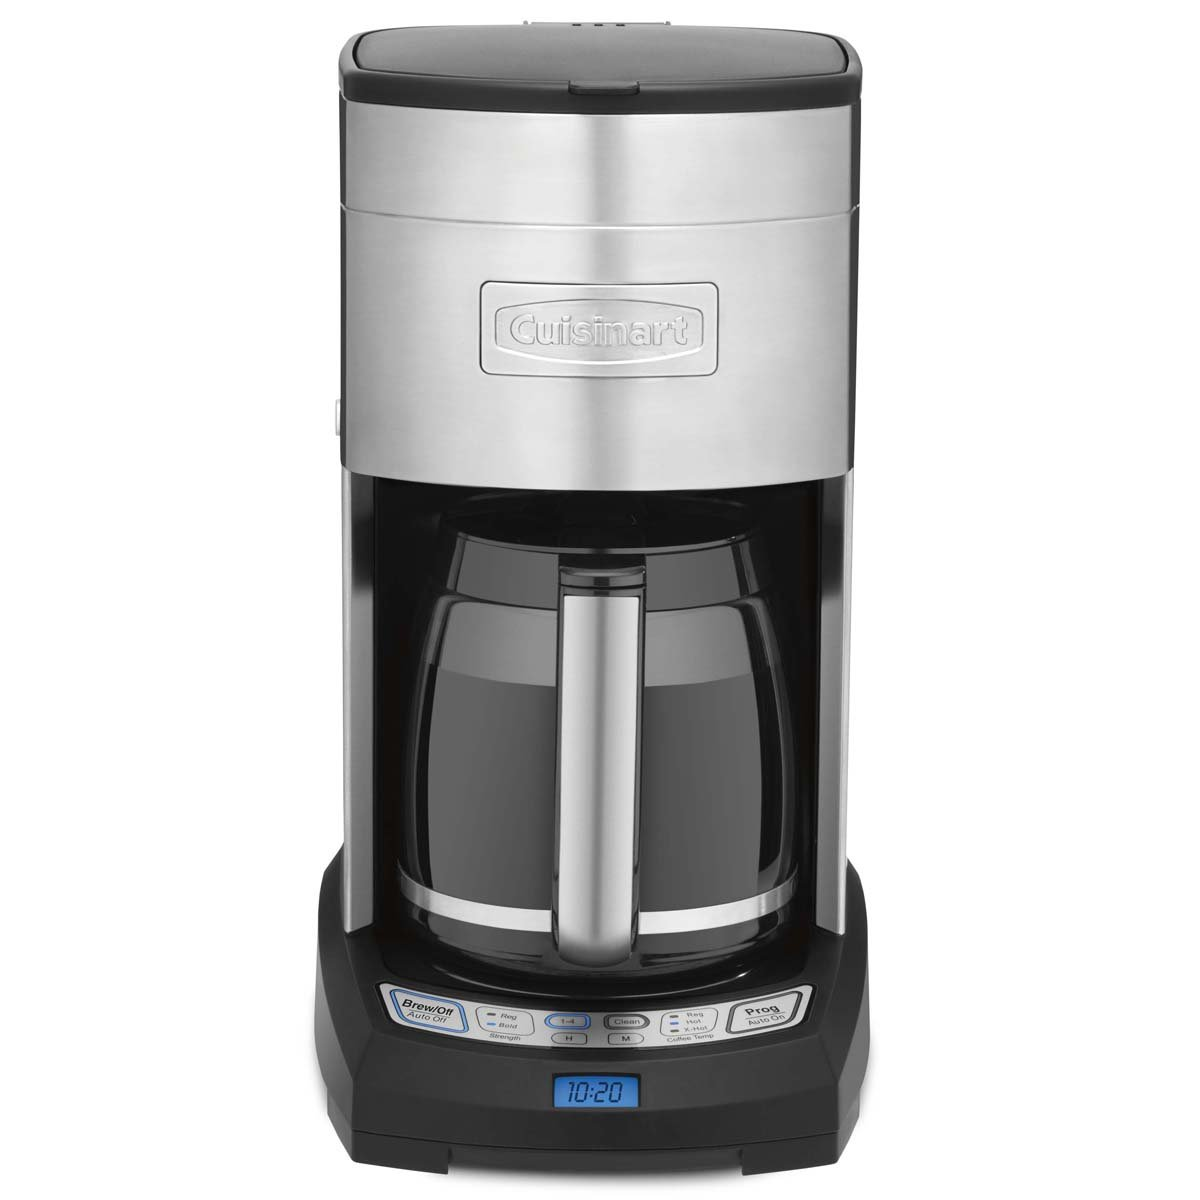 DCC-3650C Cuisinart Extreme Brew 12cup Coffeemaker